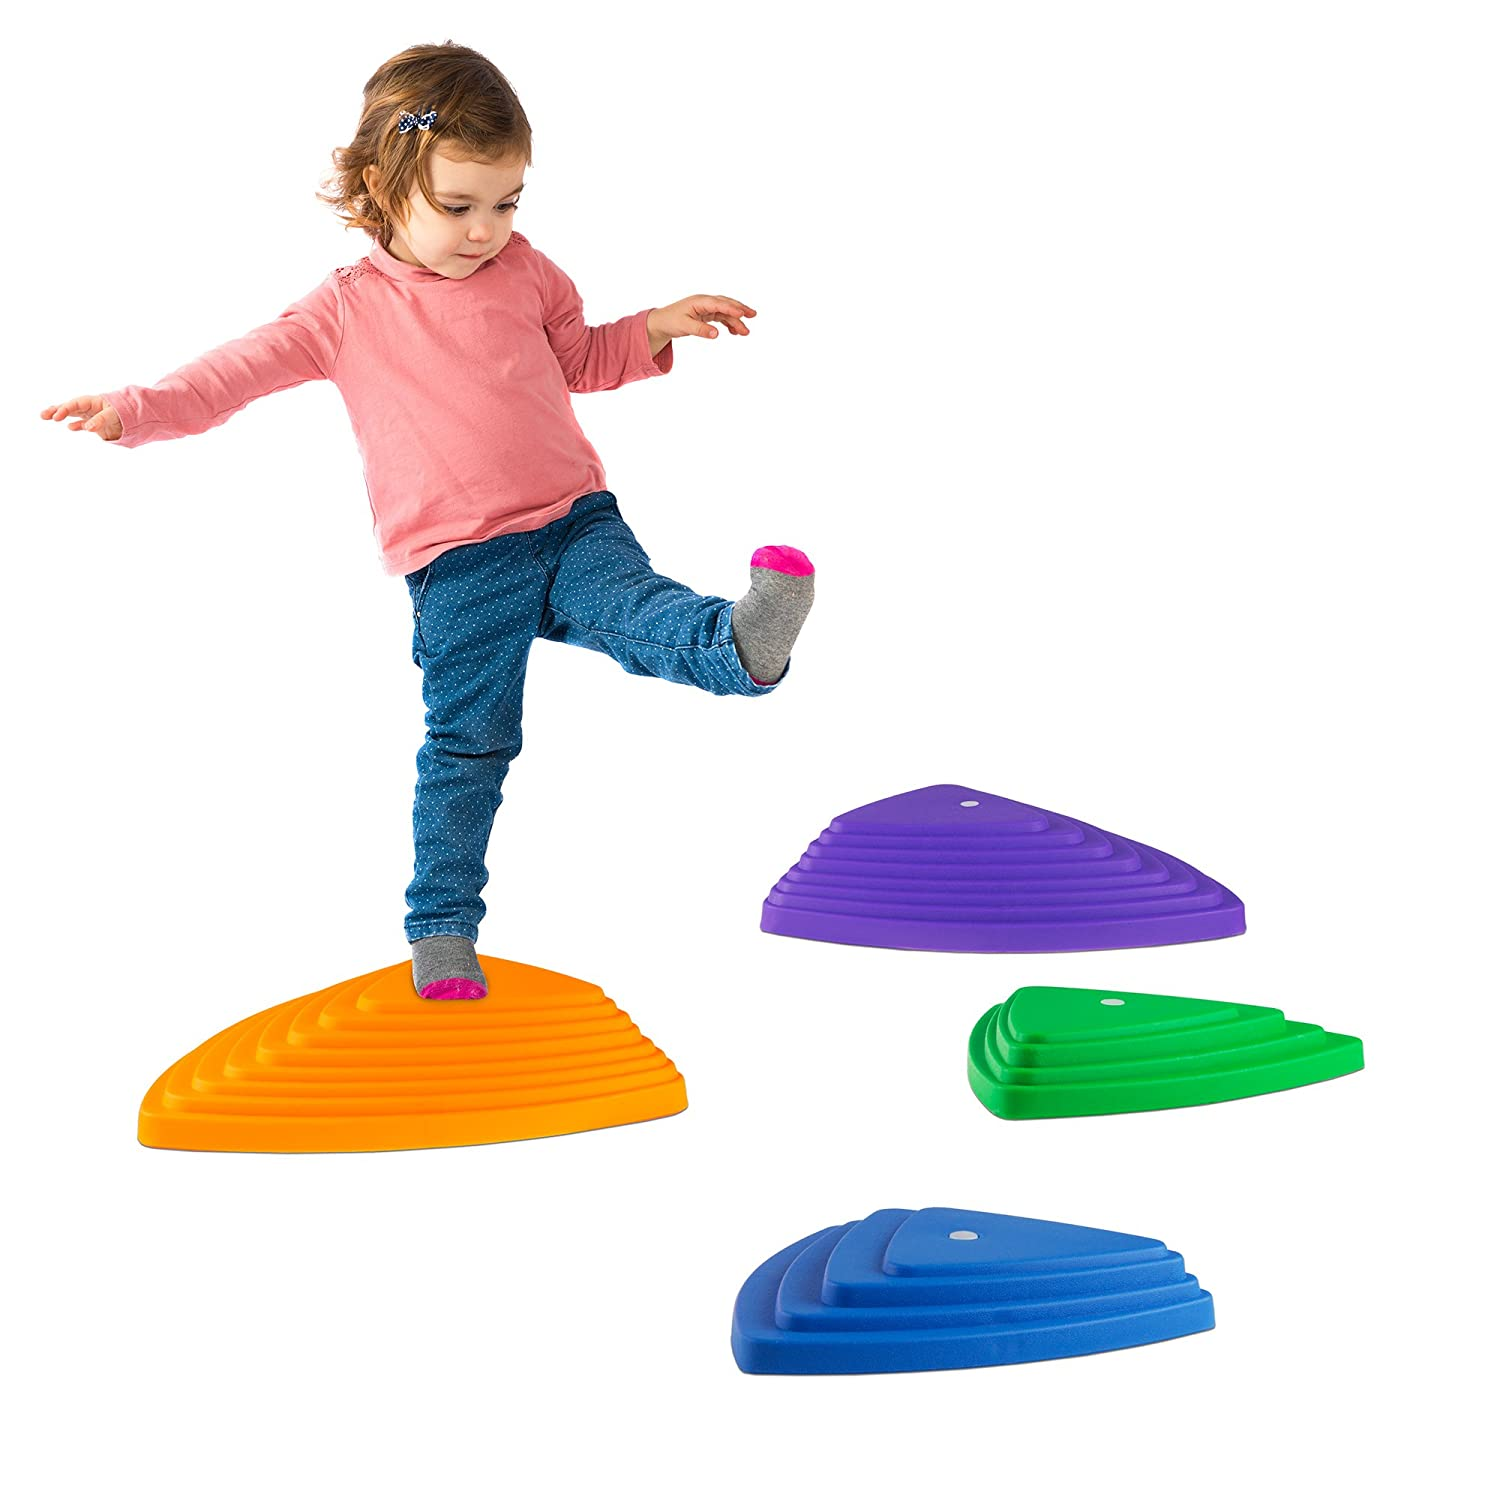 Hey Play Triangular Stepping Stones- Fun Triangles for Balance, Coordination and Exercise for Kids- Set of 6 3 Small Stones and 3 Large Stones